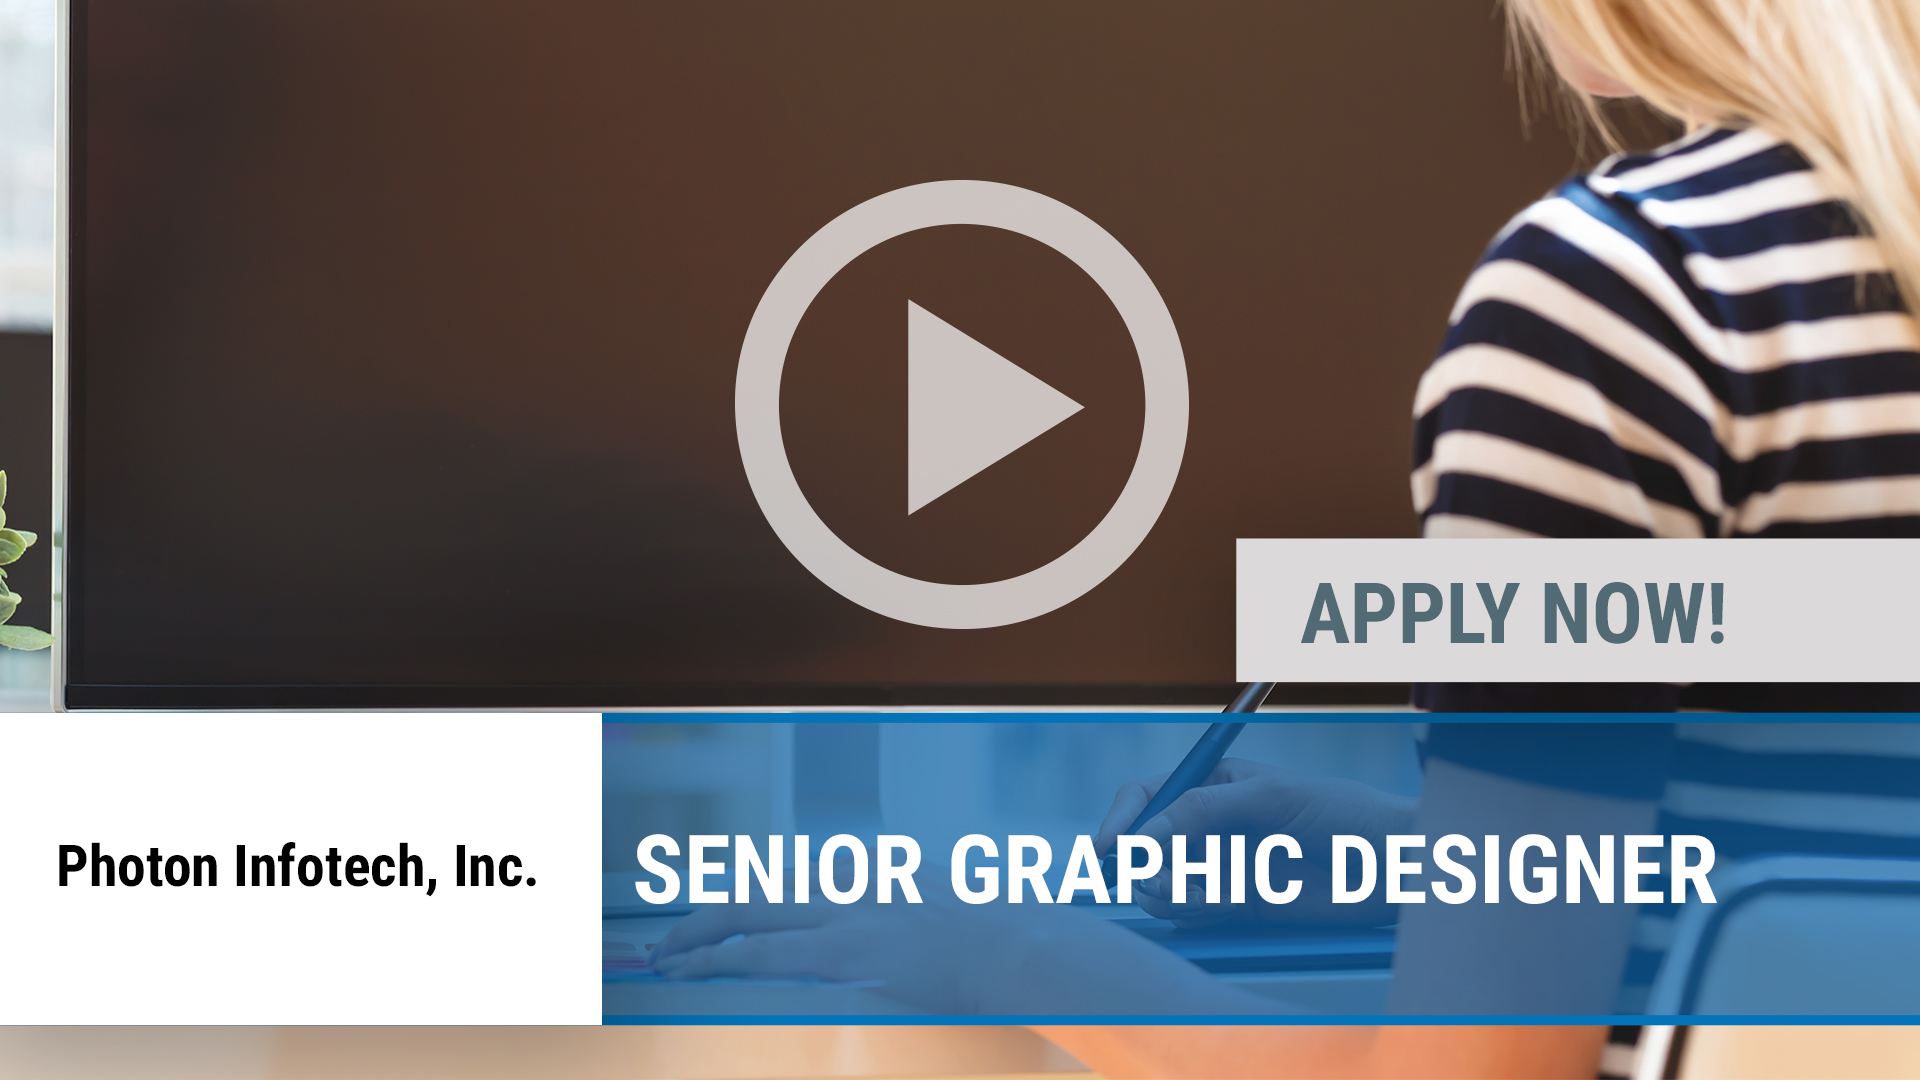 Watch our careers video for available job opening Senior Graphic Designer in Dallas, TX